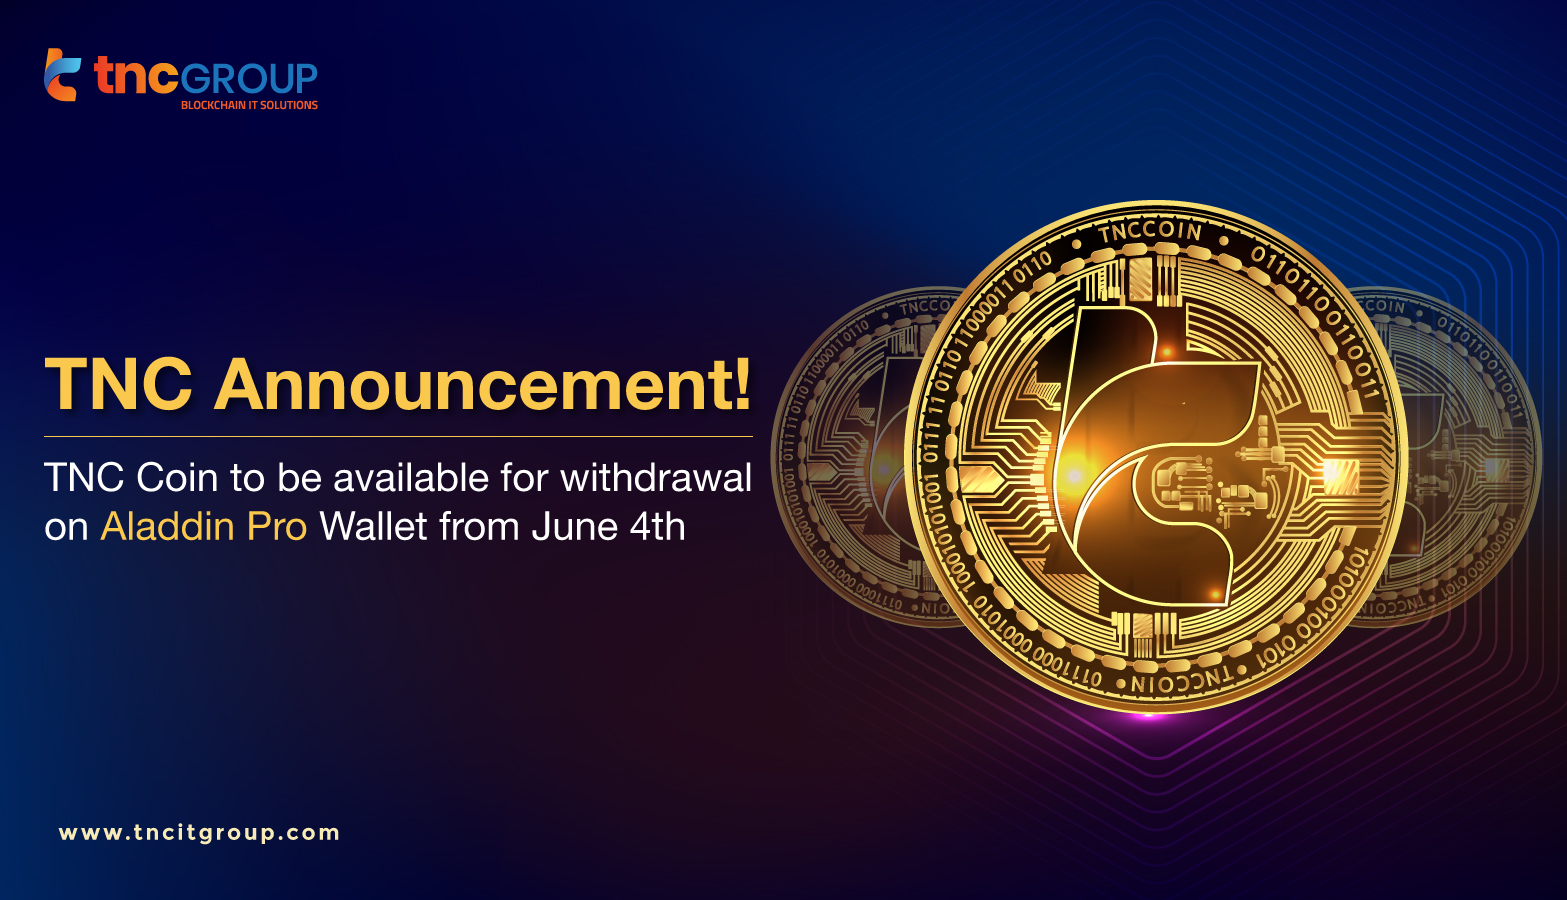 TNC Coin to be Available for withdrawal on Aladdin Pro